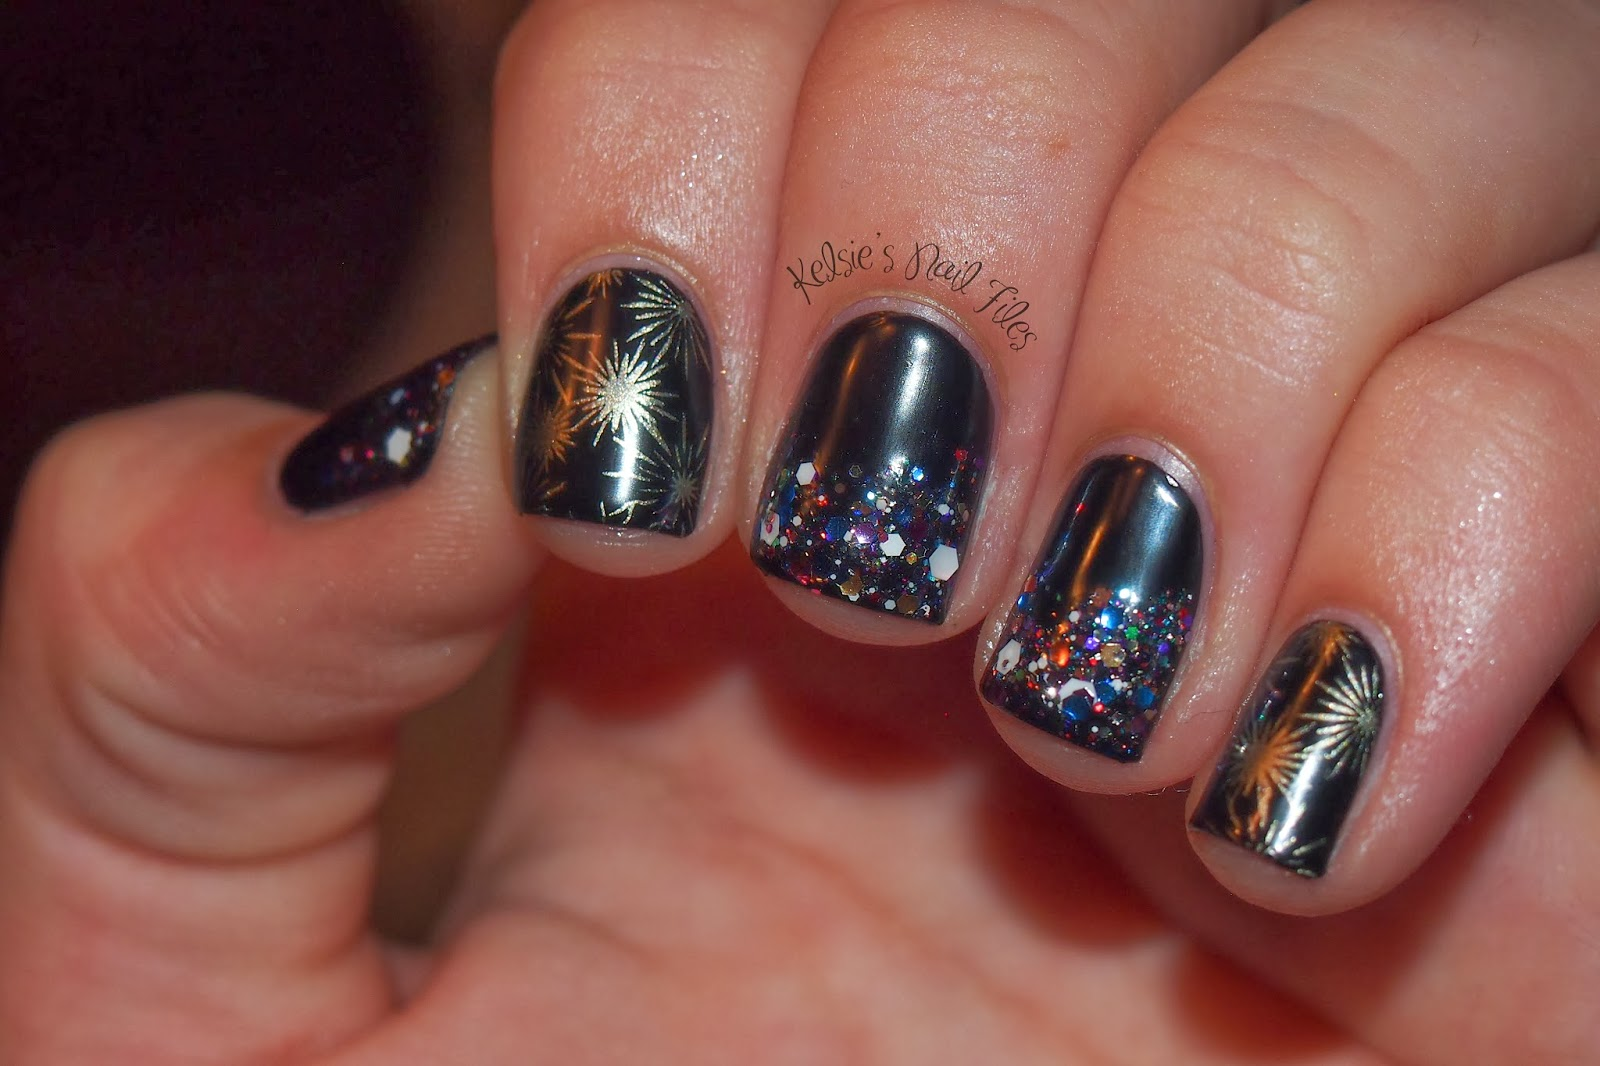 Nail Art Ideas » Nail Art Happy New Year - Pictures of Nail Art ...